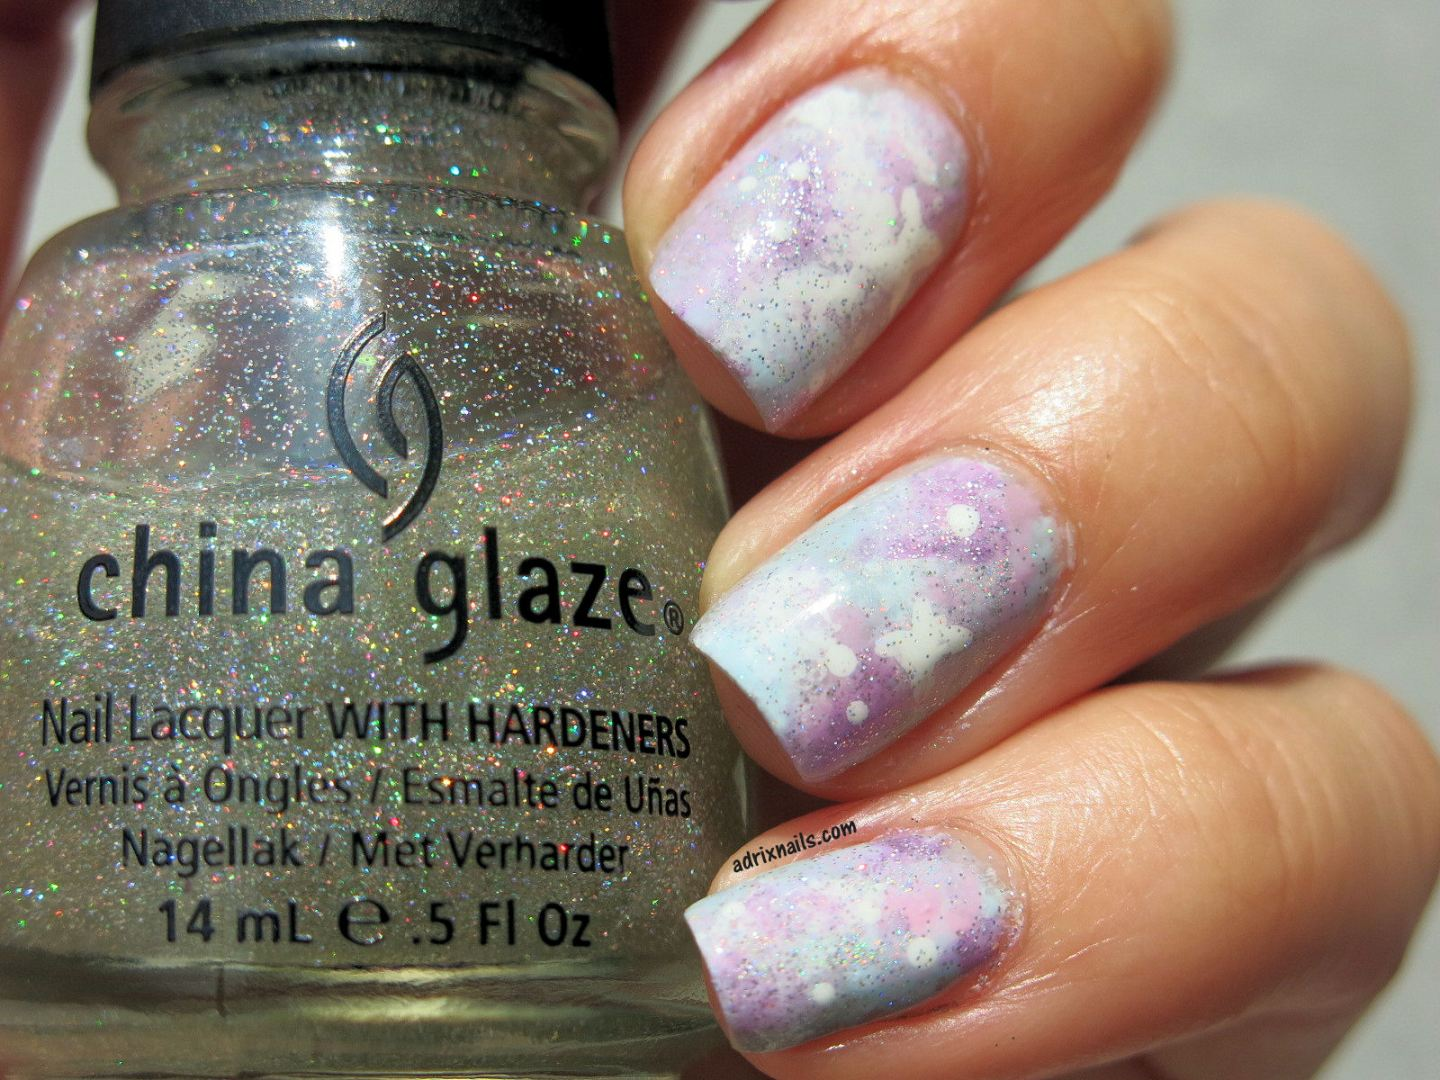 nails, uñas, nail art, esmaltes, tutorial, uñas fáciles, uñas paso a paso, easy nails, DIY, step by step, galaxia, uñas de galaxia, colores pastel, galaxy nails, pastel galaxy nails, adrixnails, blog mexicano, blogs mexicanos de nail art, bloggeras mexicanas